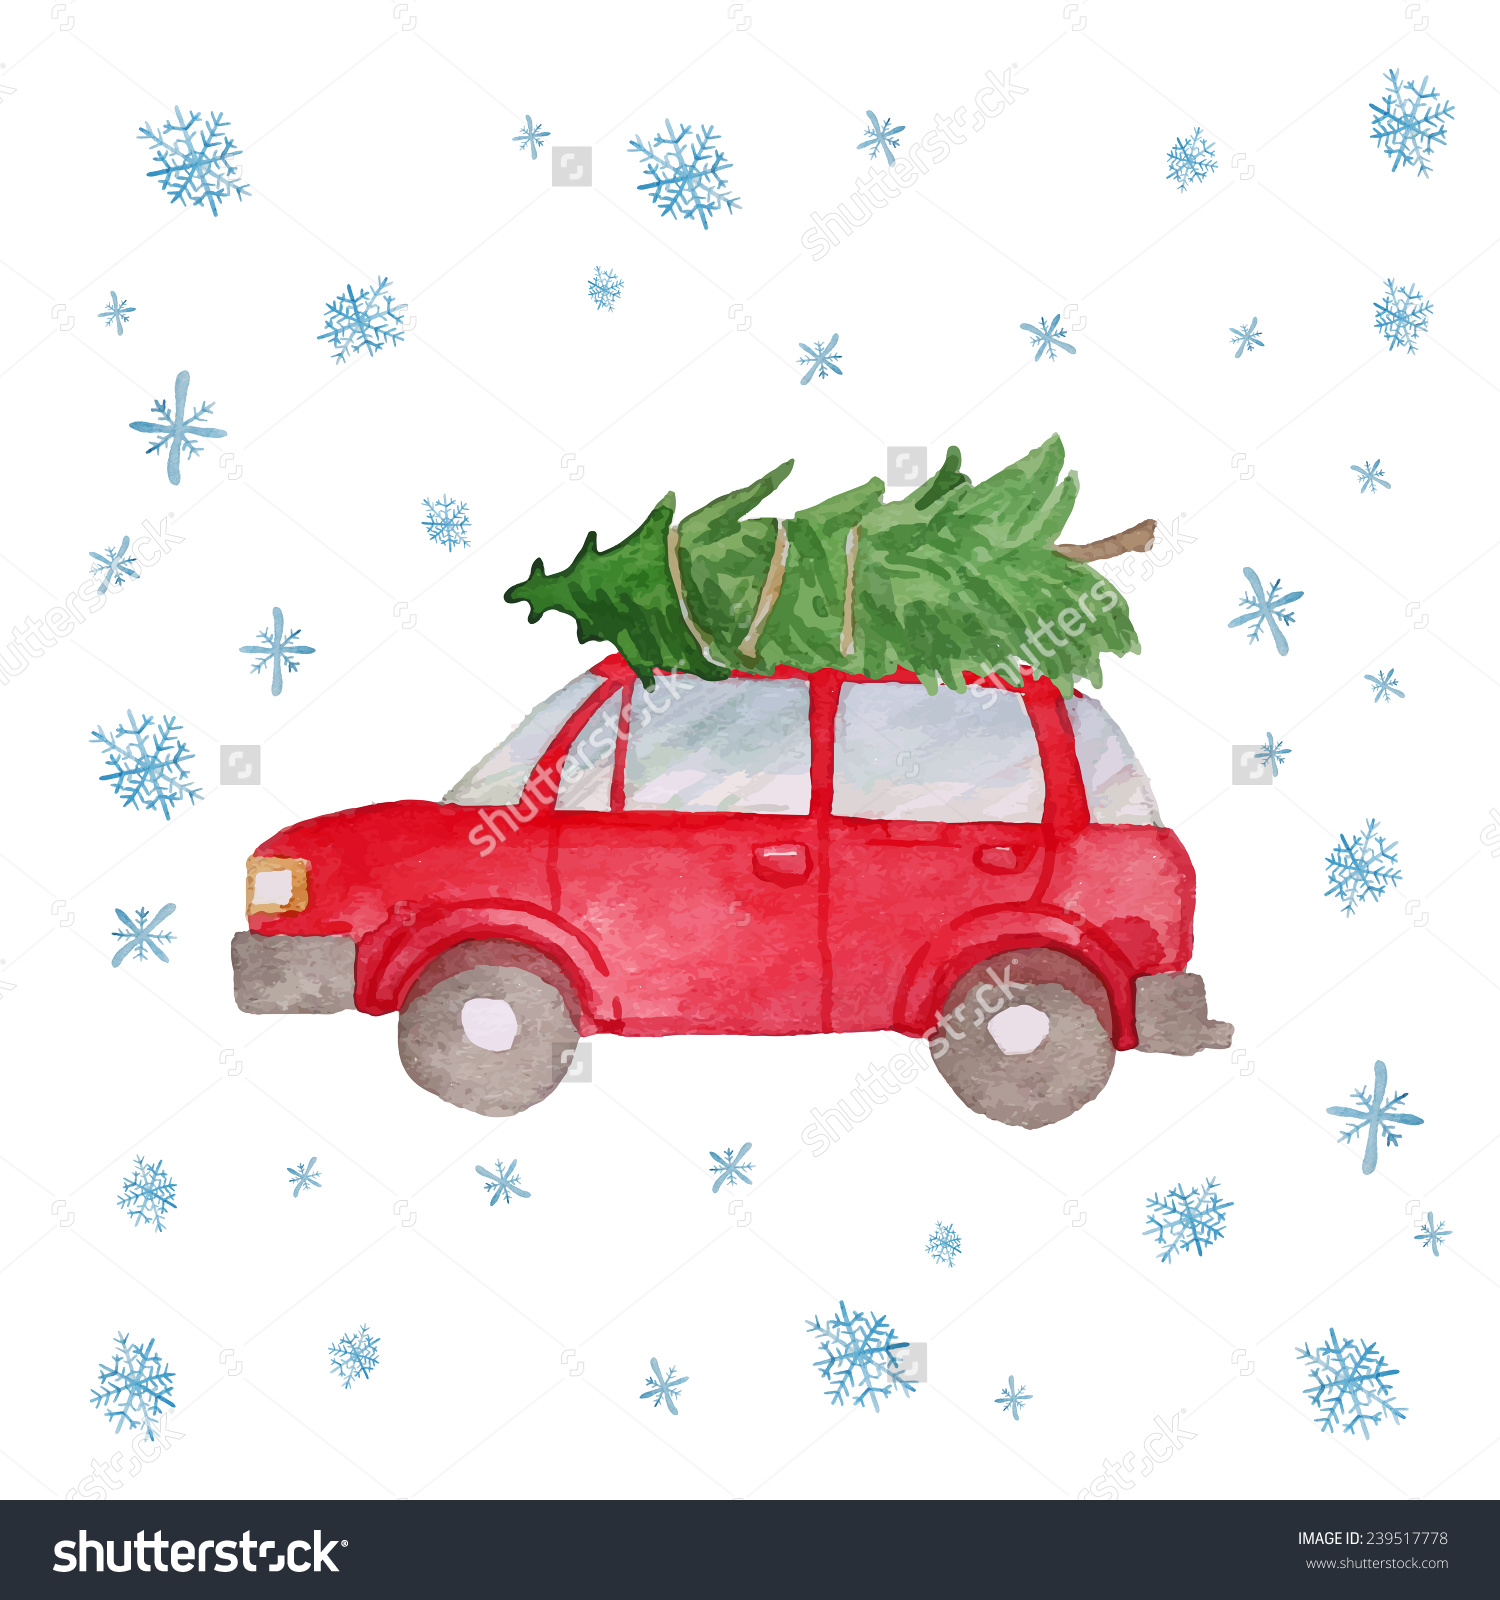 Winter Retro Car Christmas Tree Snowflakes Stock Vector 239517778.